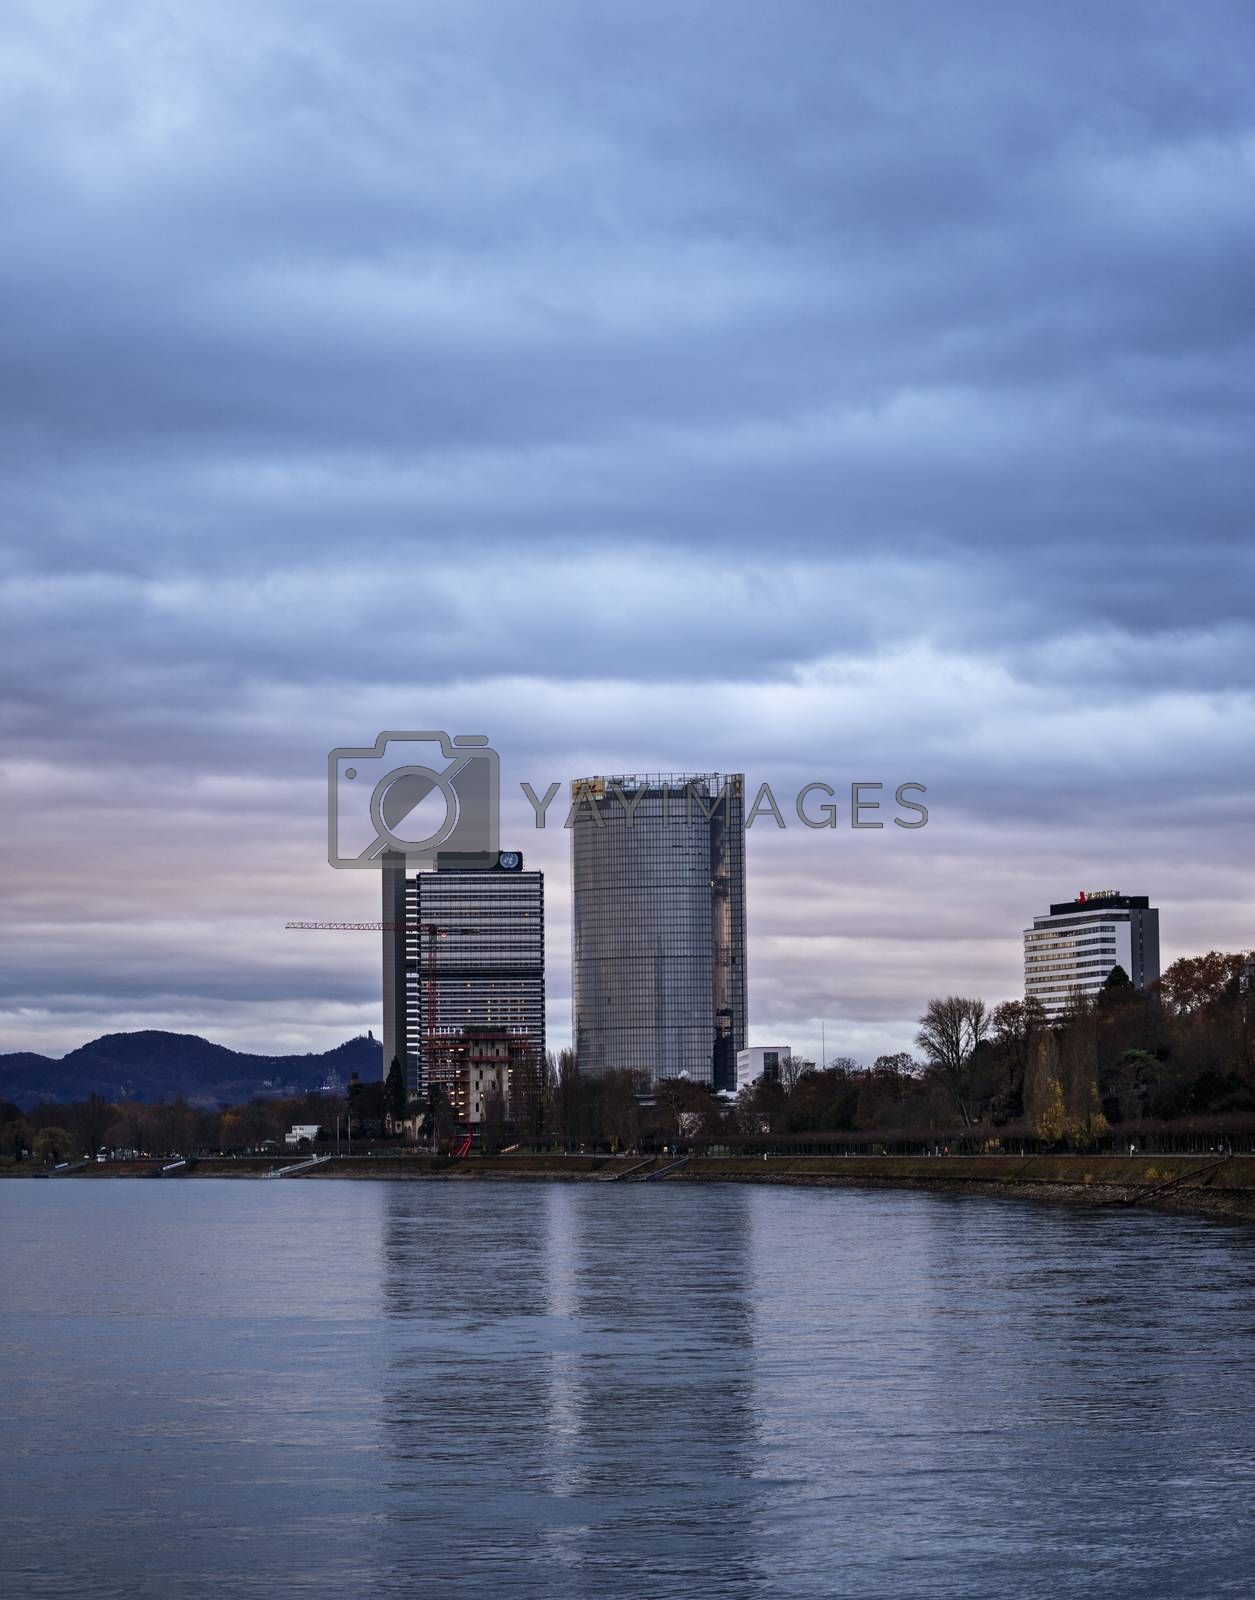 View of the Post Tower and United Nations building from the Rhine river at dusk.